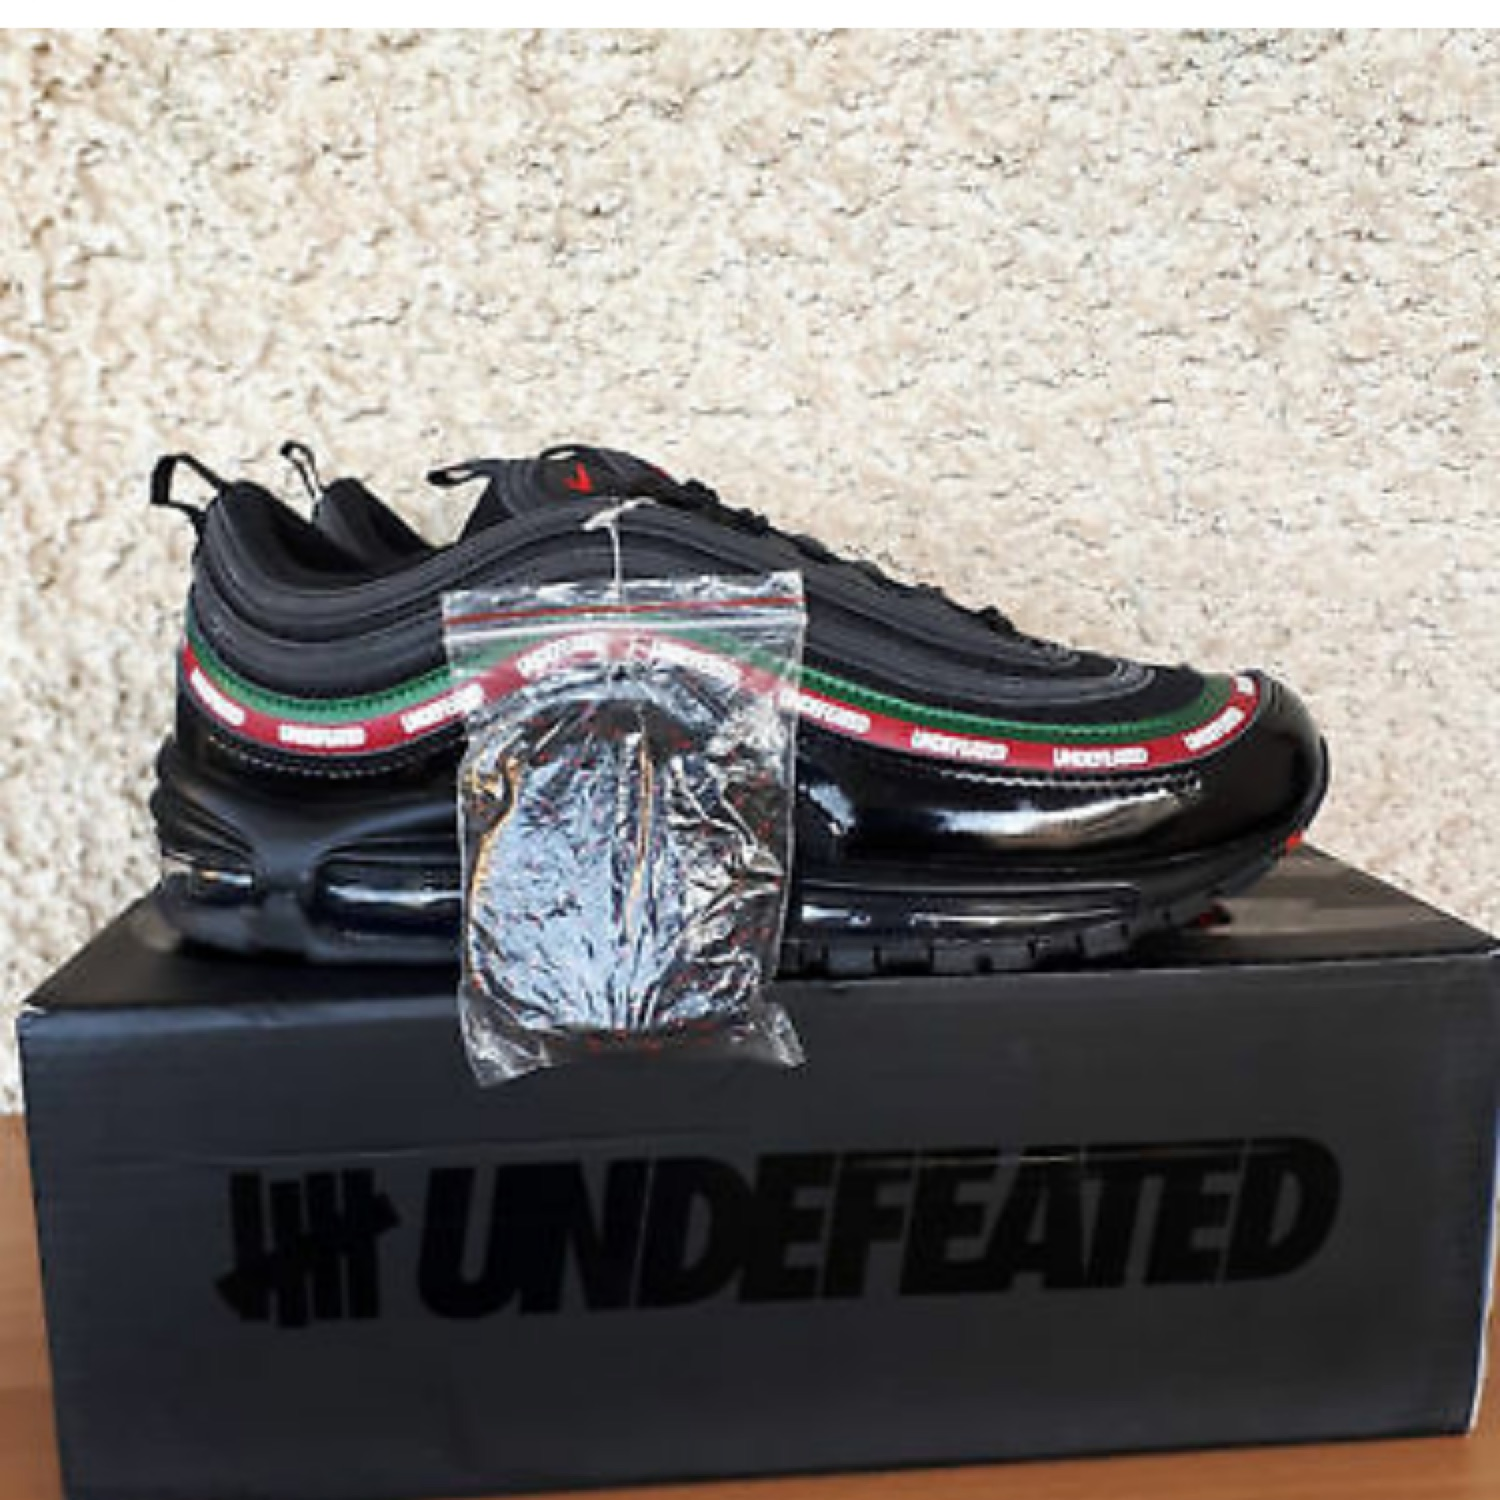 info for 2fc74 22990 Nike Undefeated Trainers 8-10 Air Max 90 95 97 720